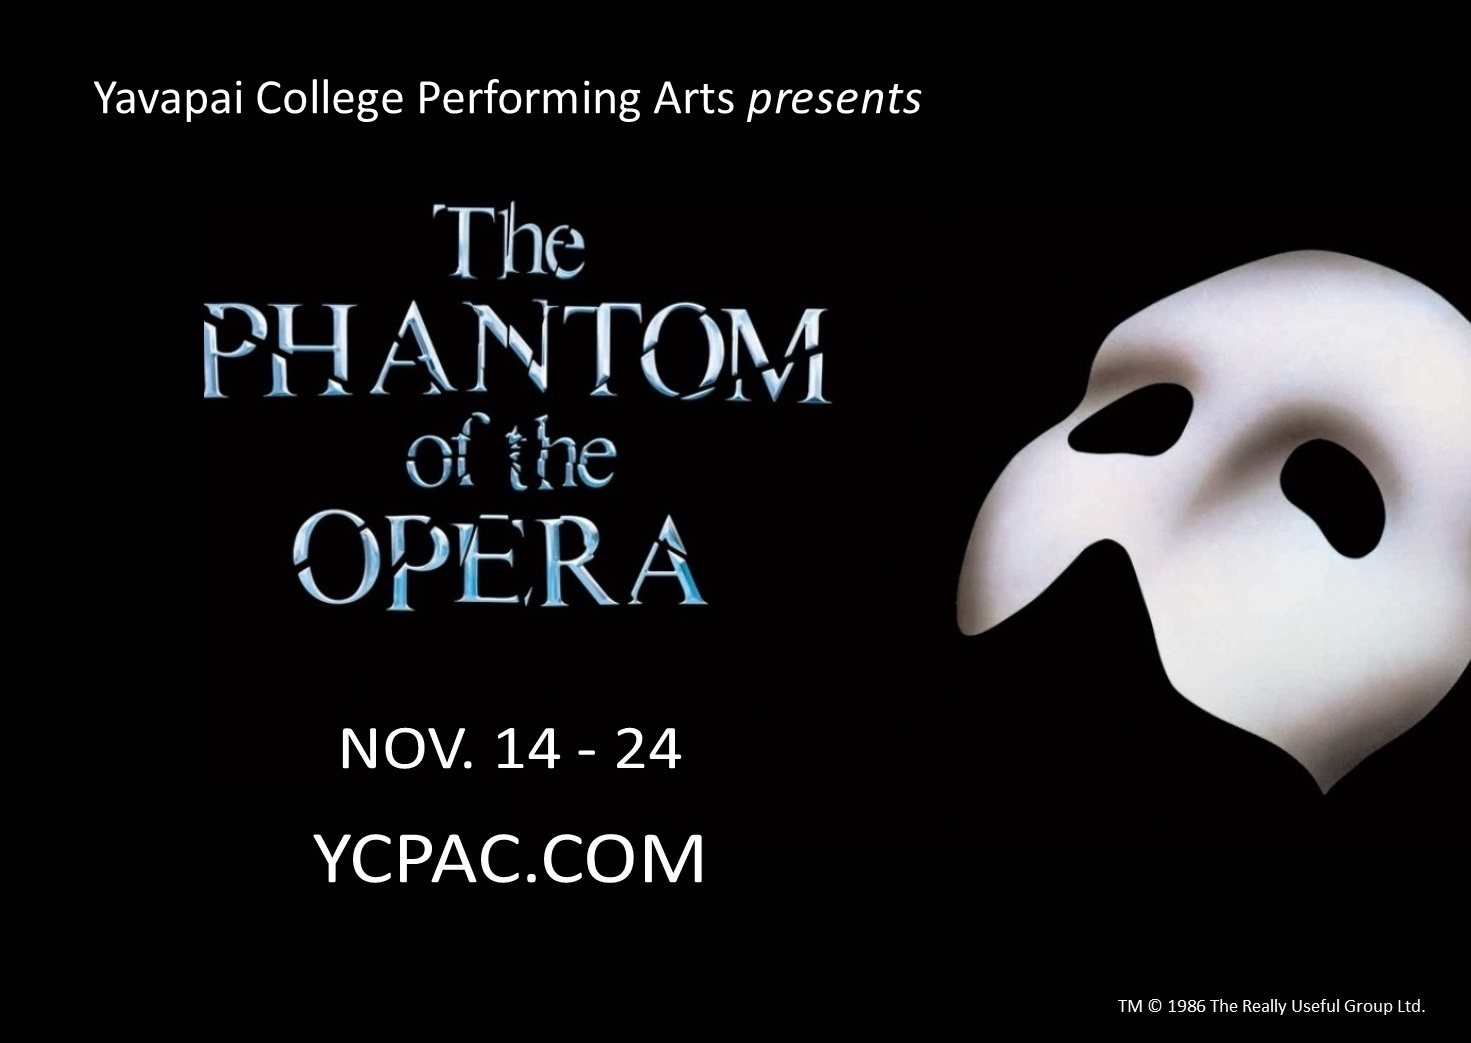 Yavapai College Performing Arts Center presents